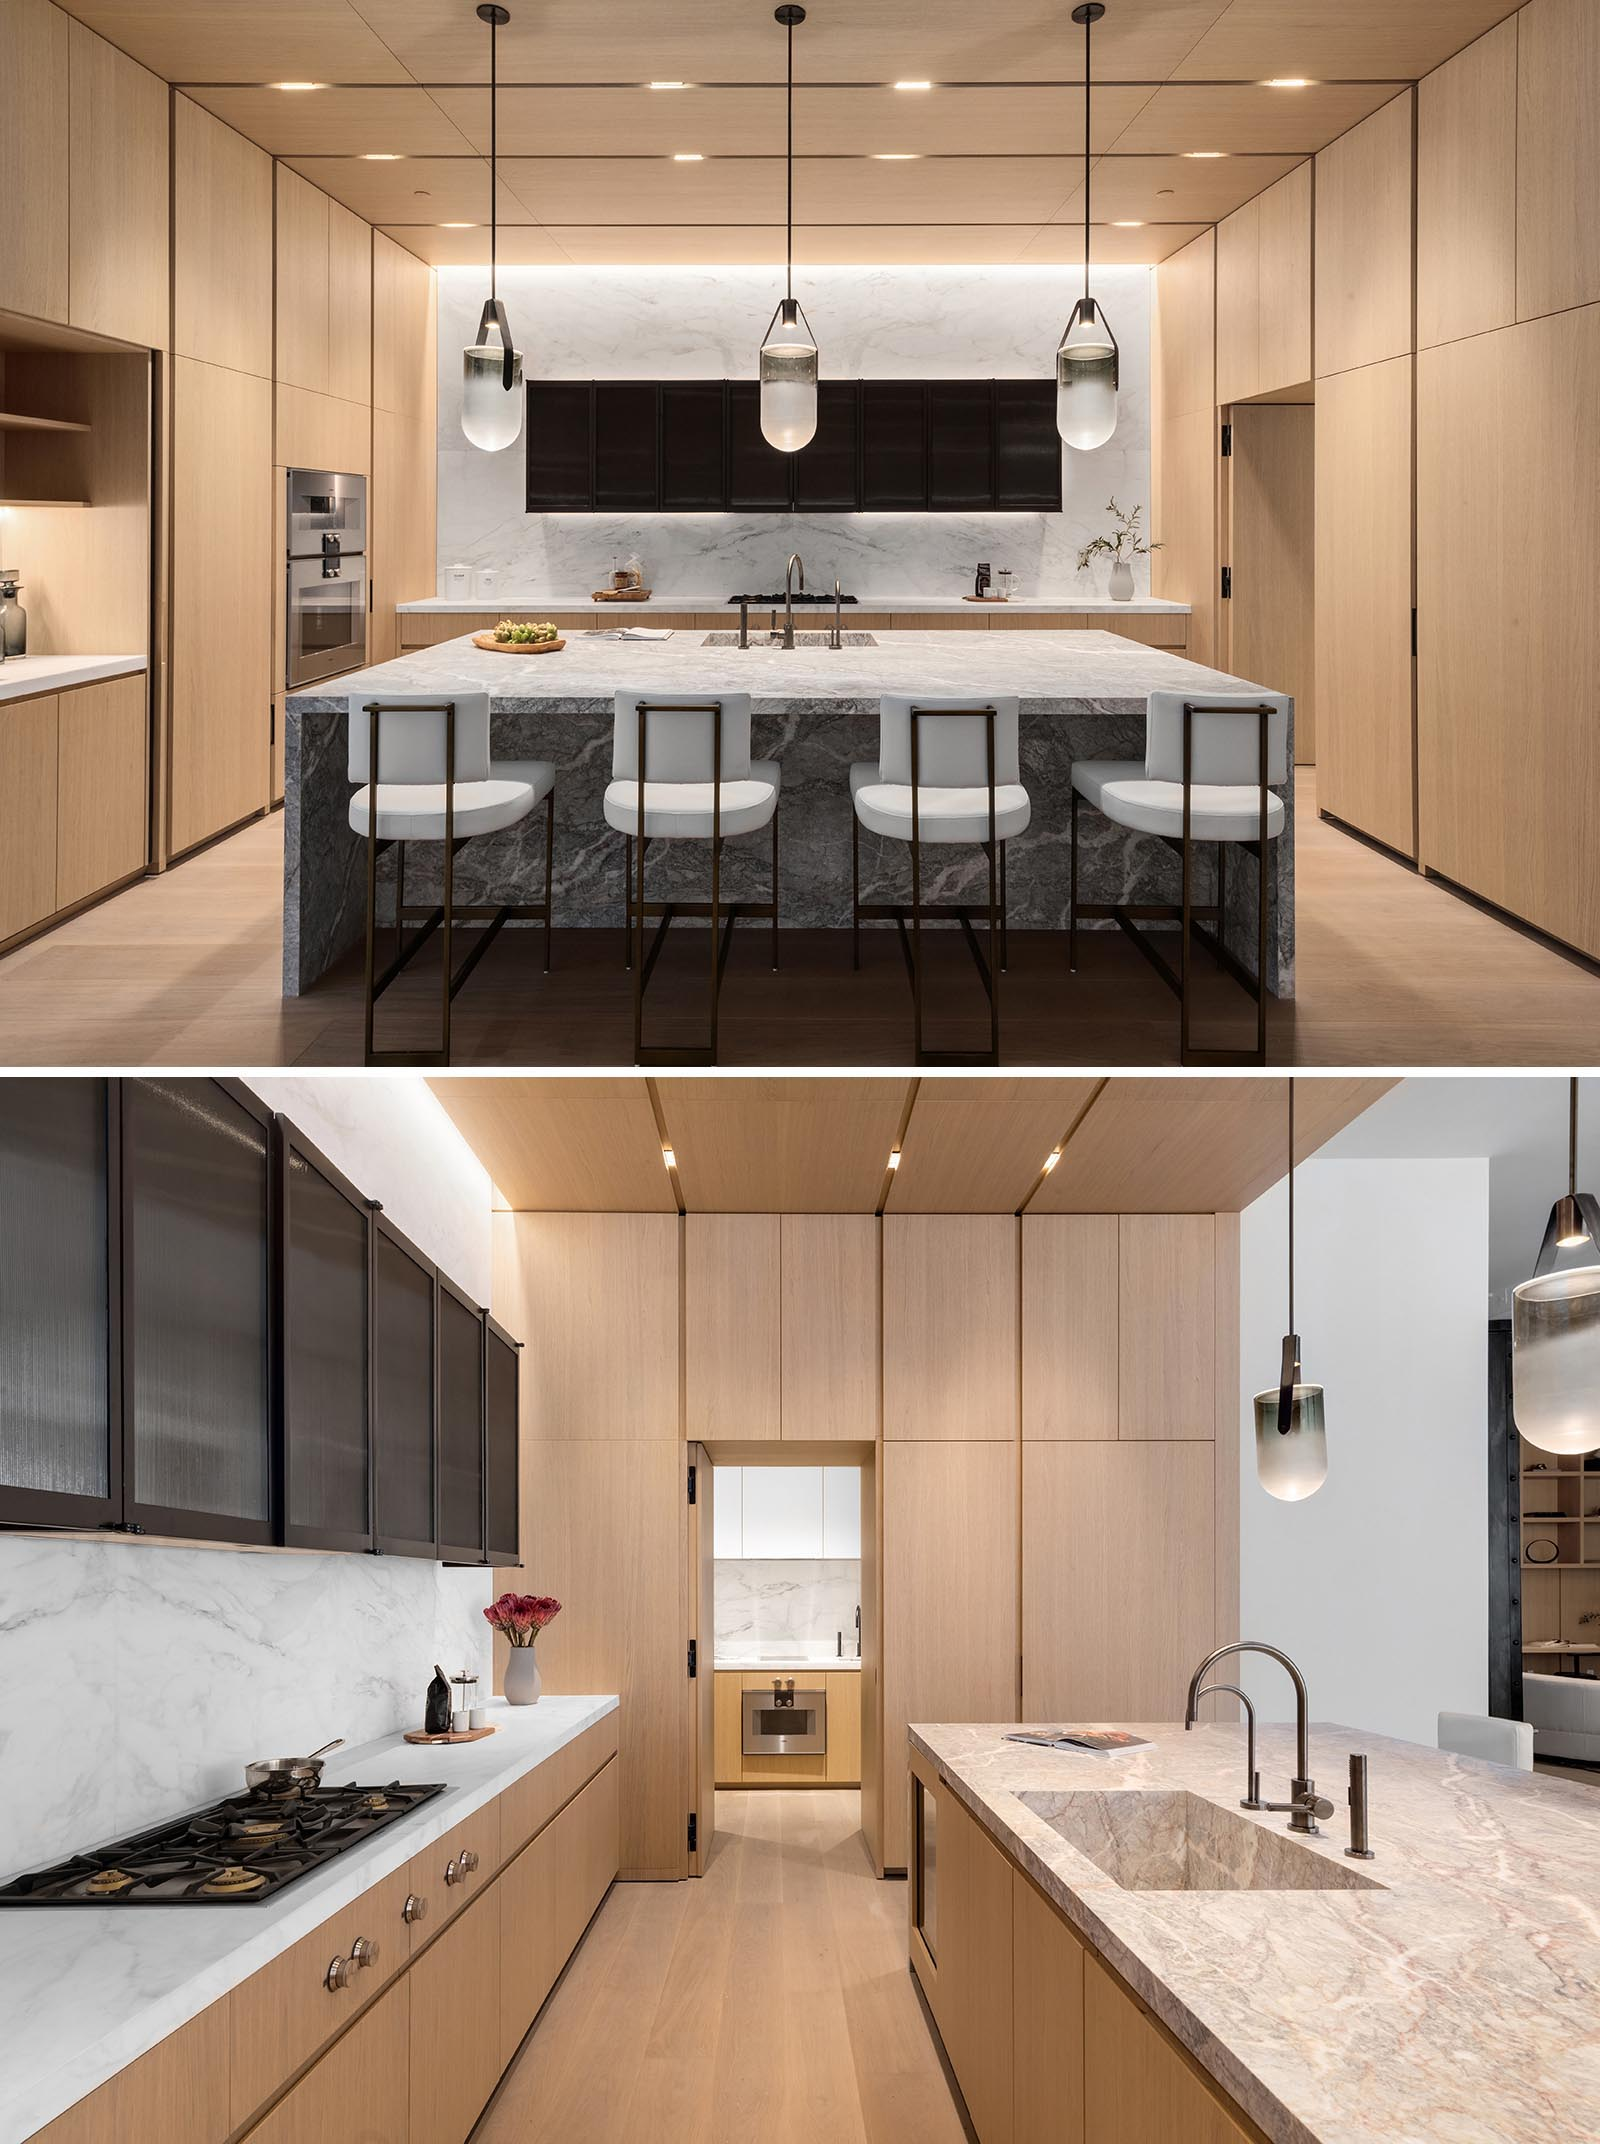 In this modern wood kitchen kitchen, there's a single slab Fior di Bosco marble island that measure in at 10 feet, custom Canova white oak cabinets and millwork, a Calacatta stone countertop and backsplash, as well a scullery.